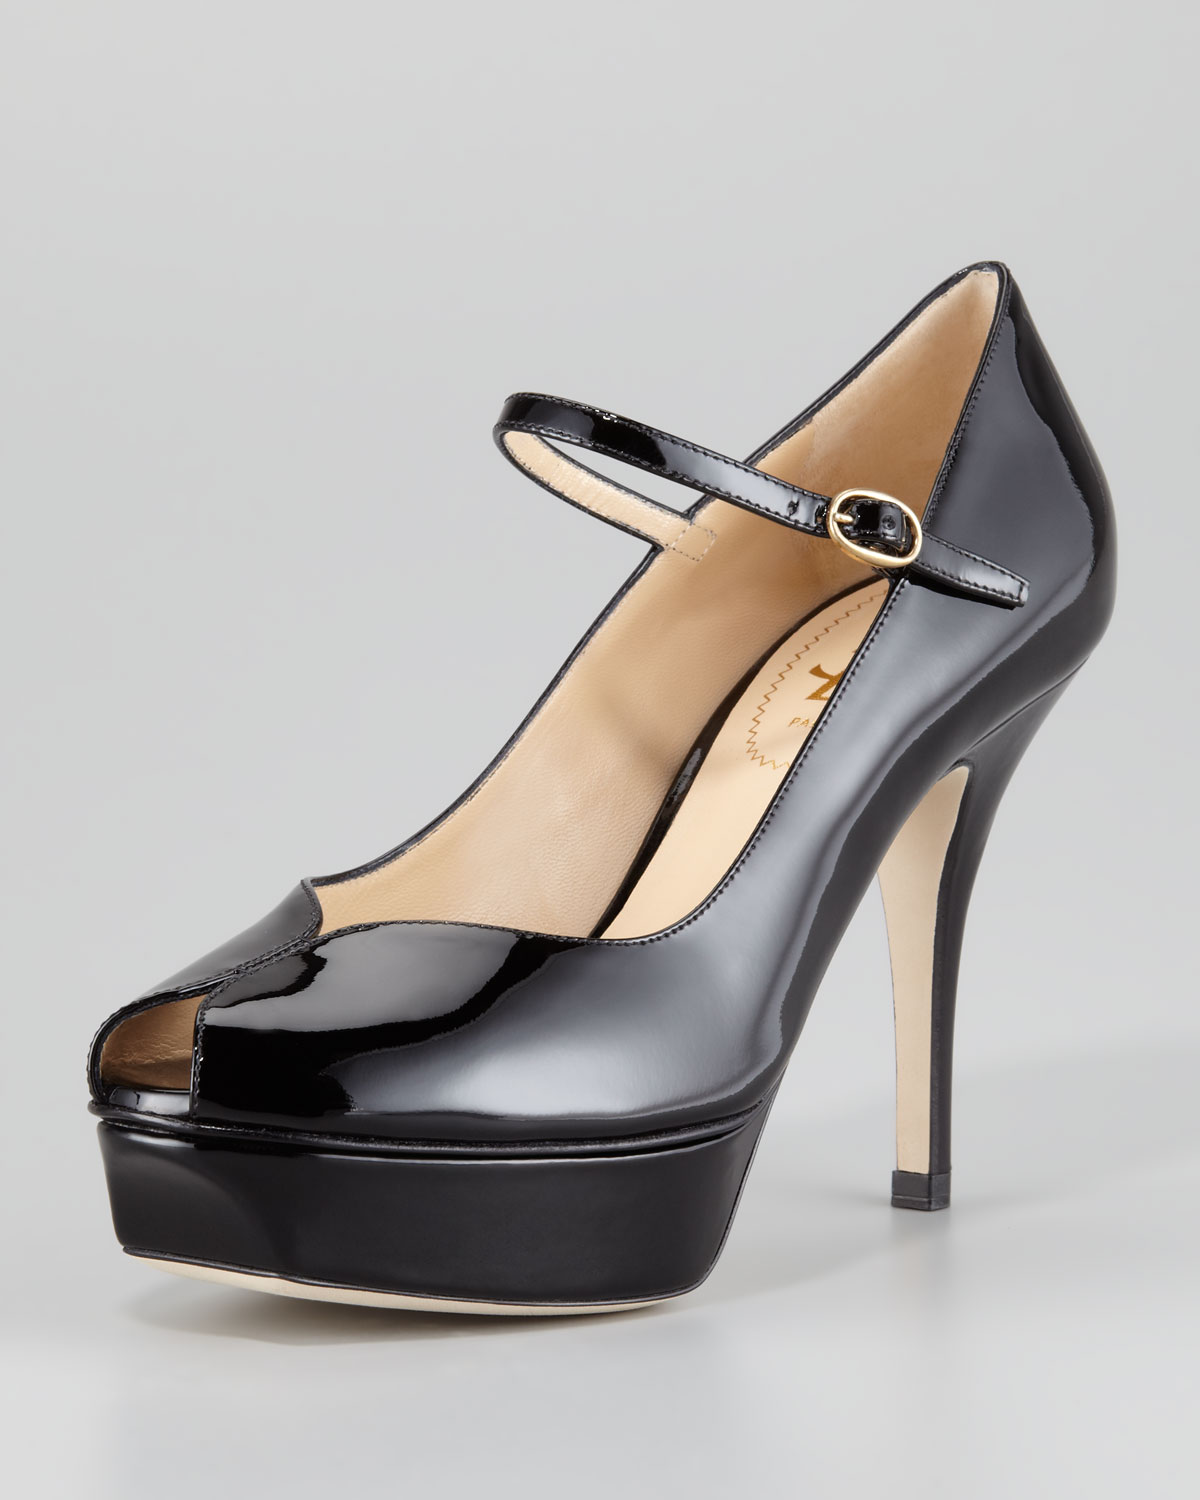 Tribute 105 patent leather pumps Saint Laurent 5agH1AN9x